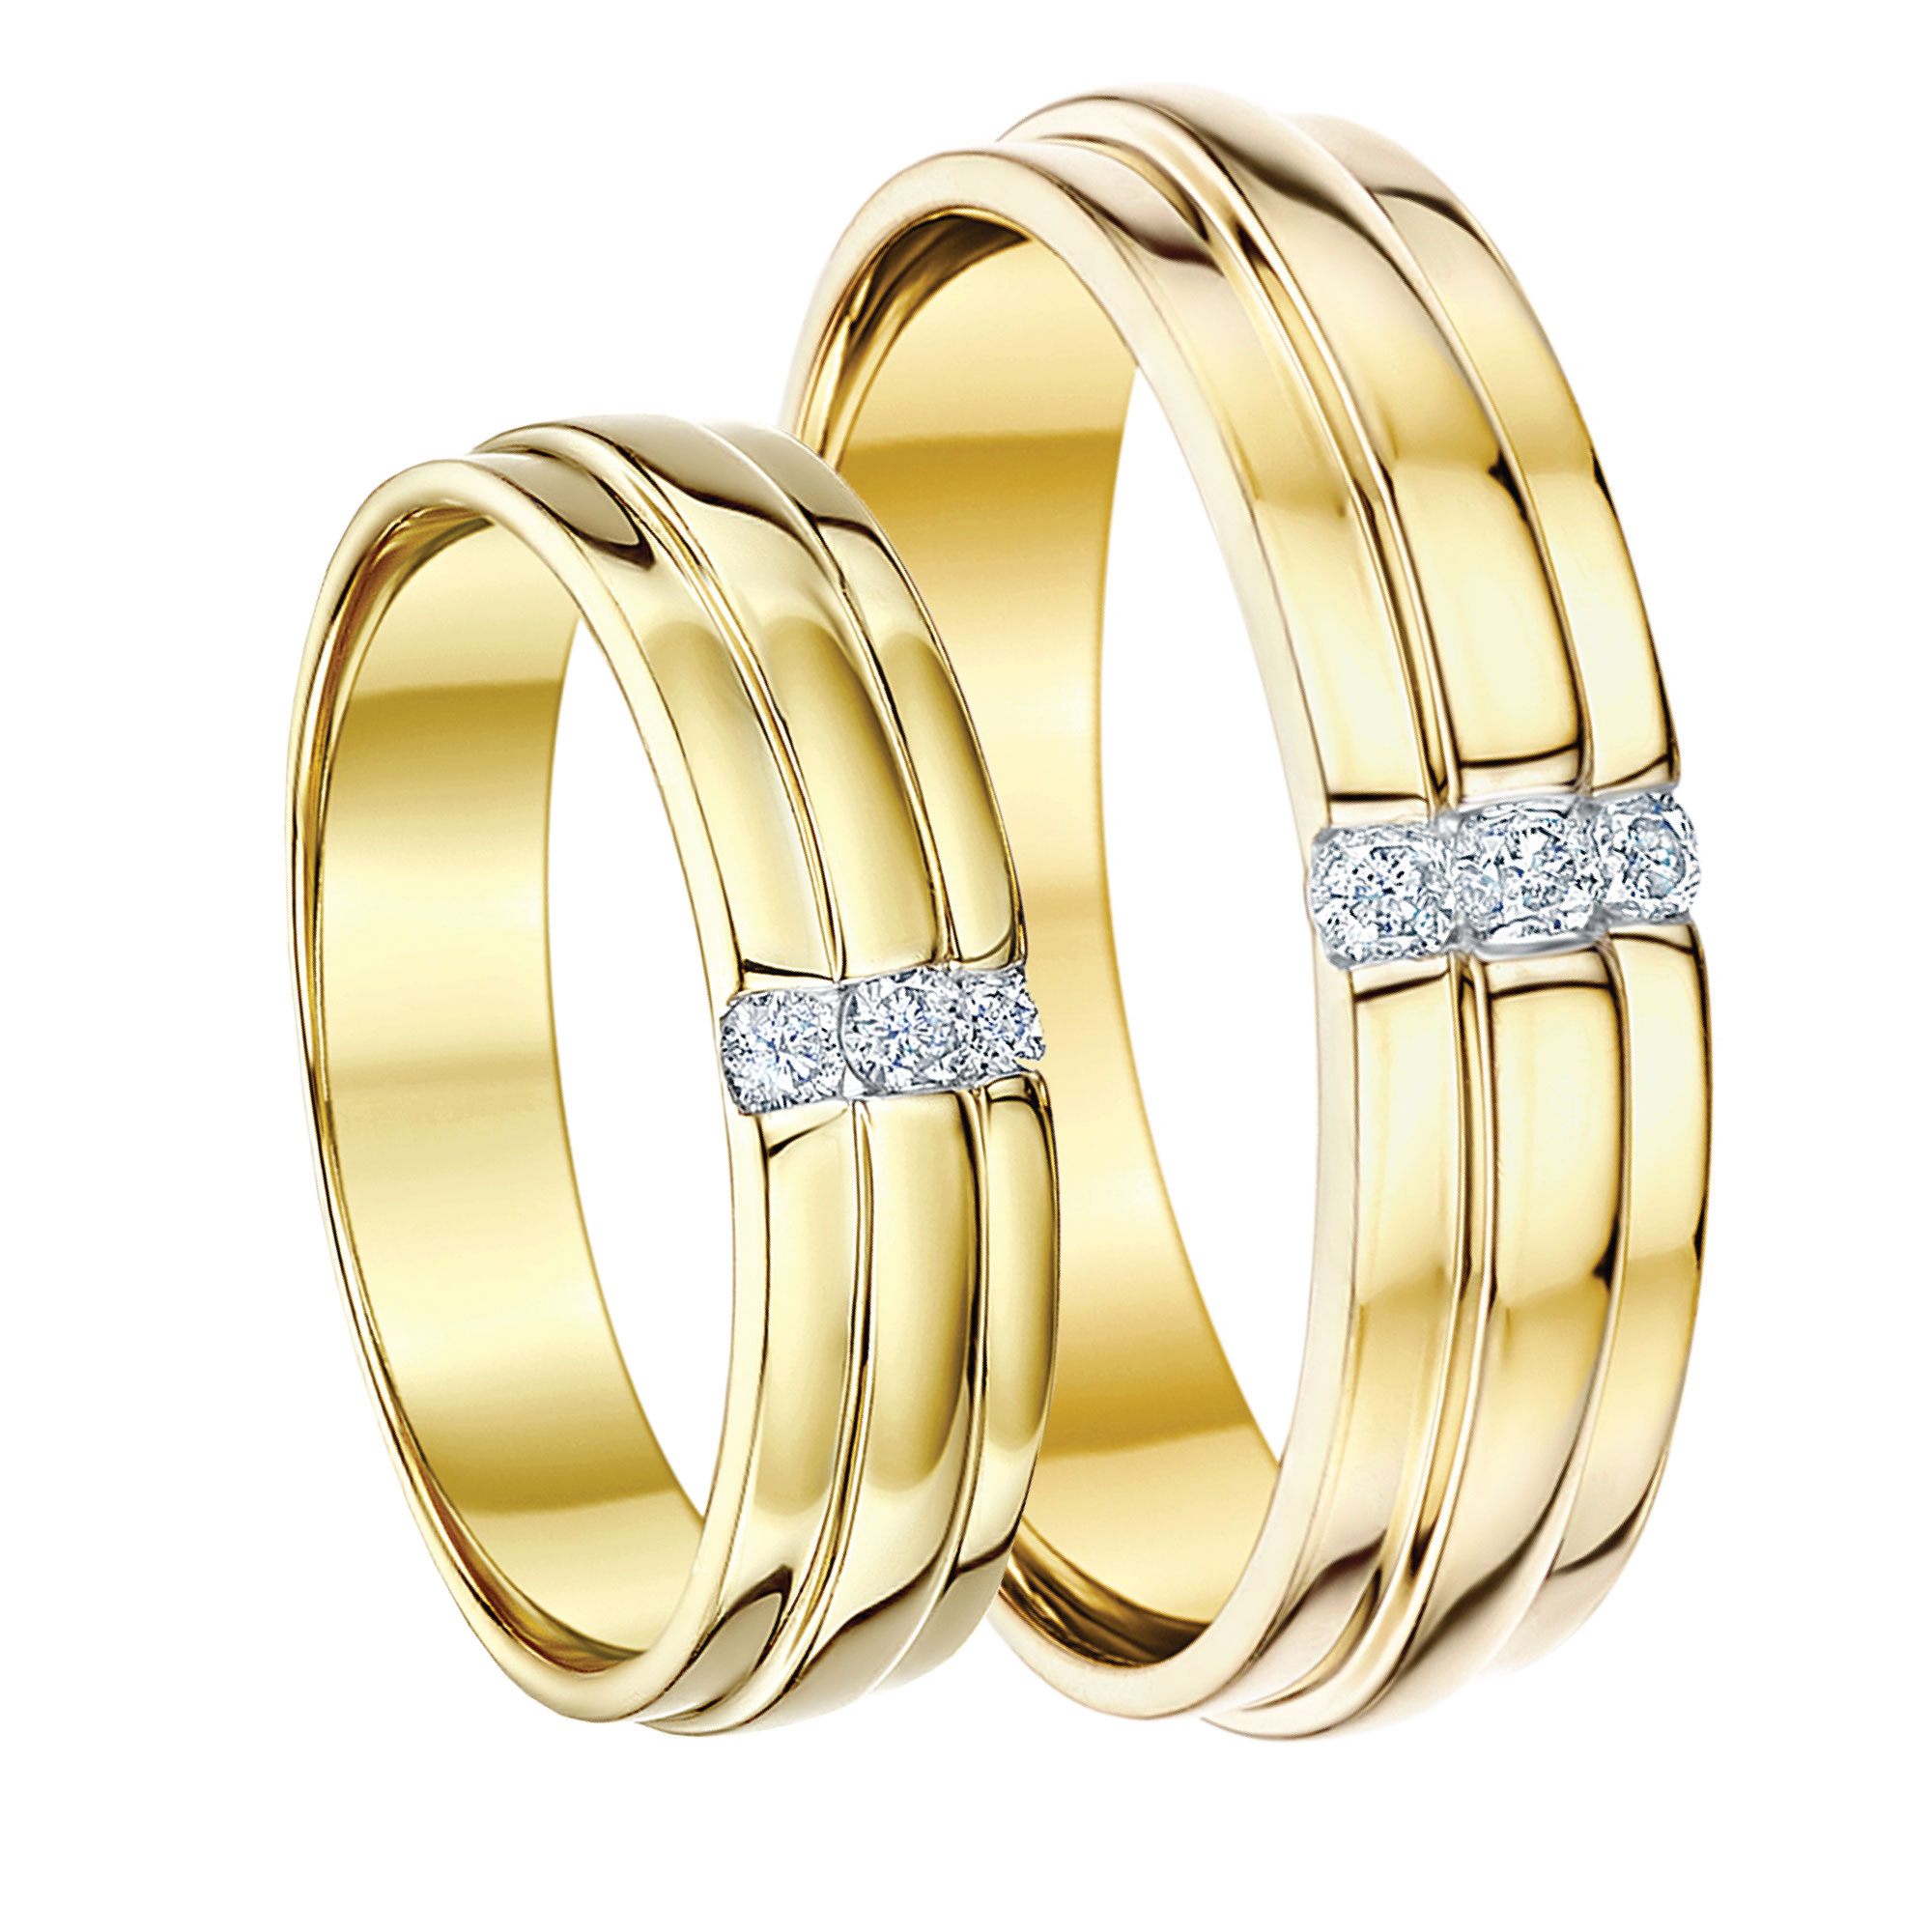 Matching Yellow Gold Wedding Ring Sets His & Hers Sets For Groom